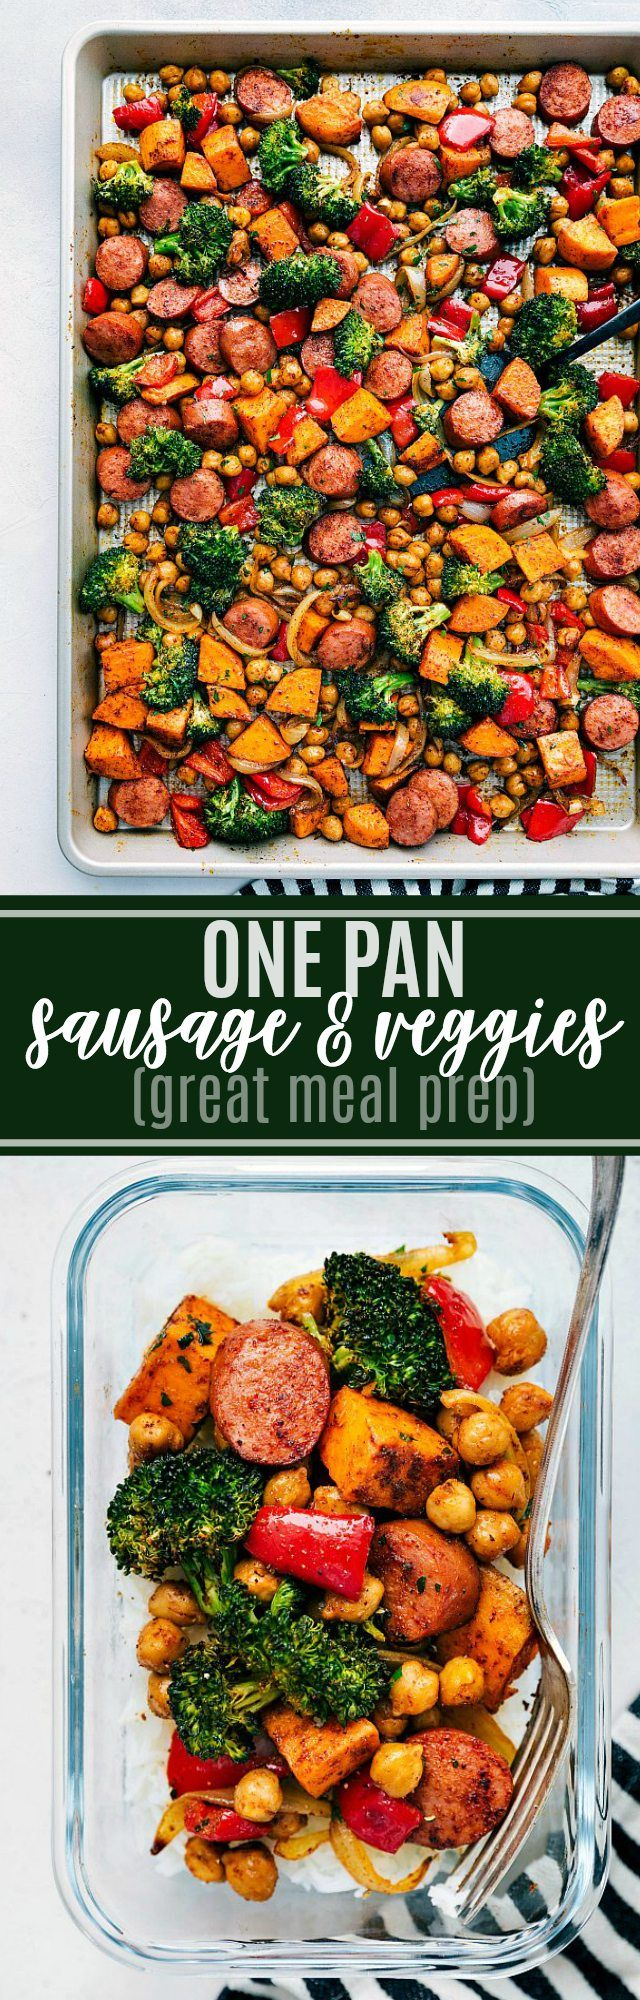 ONE PAN HEALTHY SAUSAGE AND VEGGIES | chelseasmessyapron.com | #sausage #veggies #onepan #easy #quick #fast #cleanup #minimal #chickpeas #sausage #broccoli #red pepper #onion #family #friendly #kid #meal #prep #healthy #simple #whole30